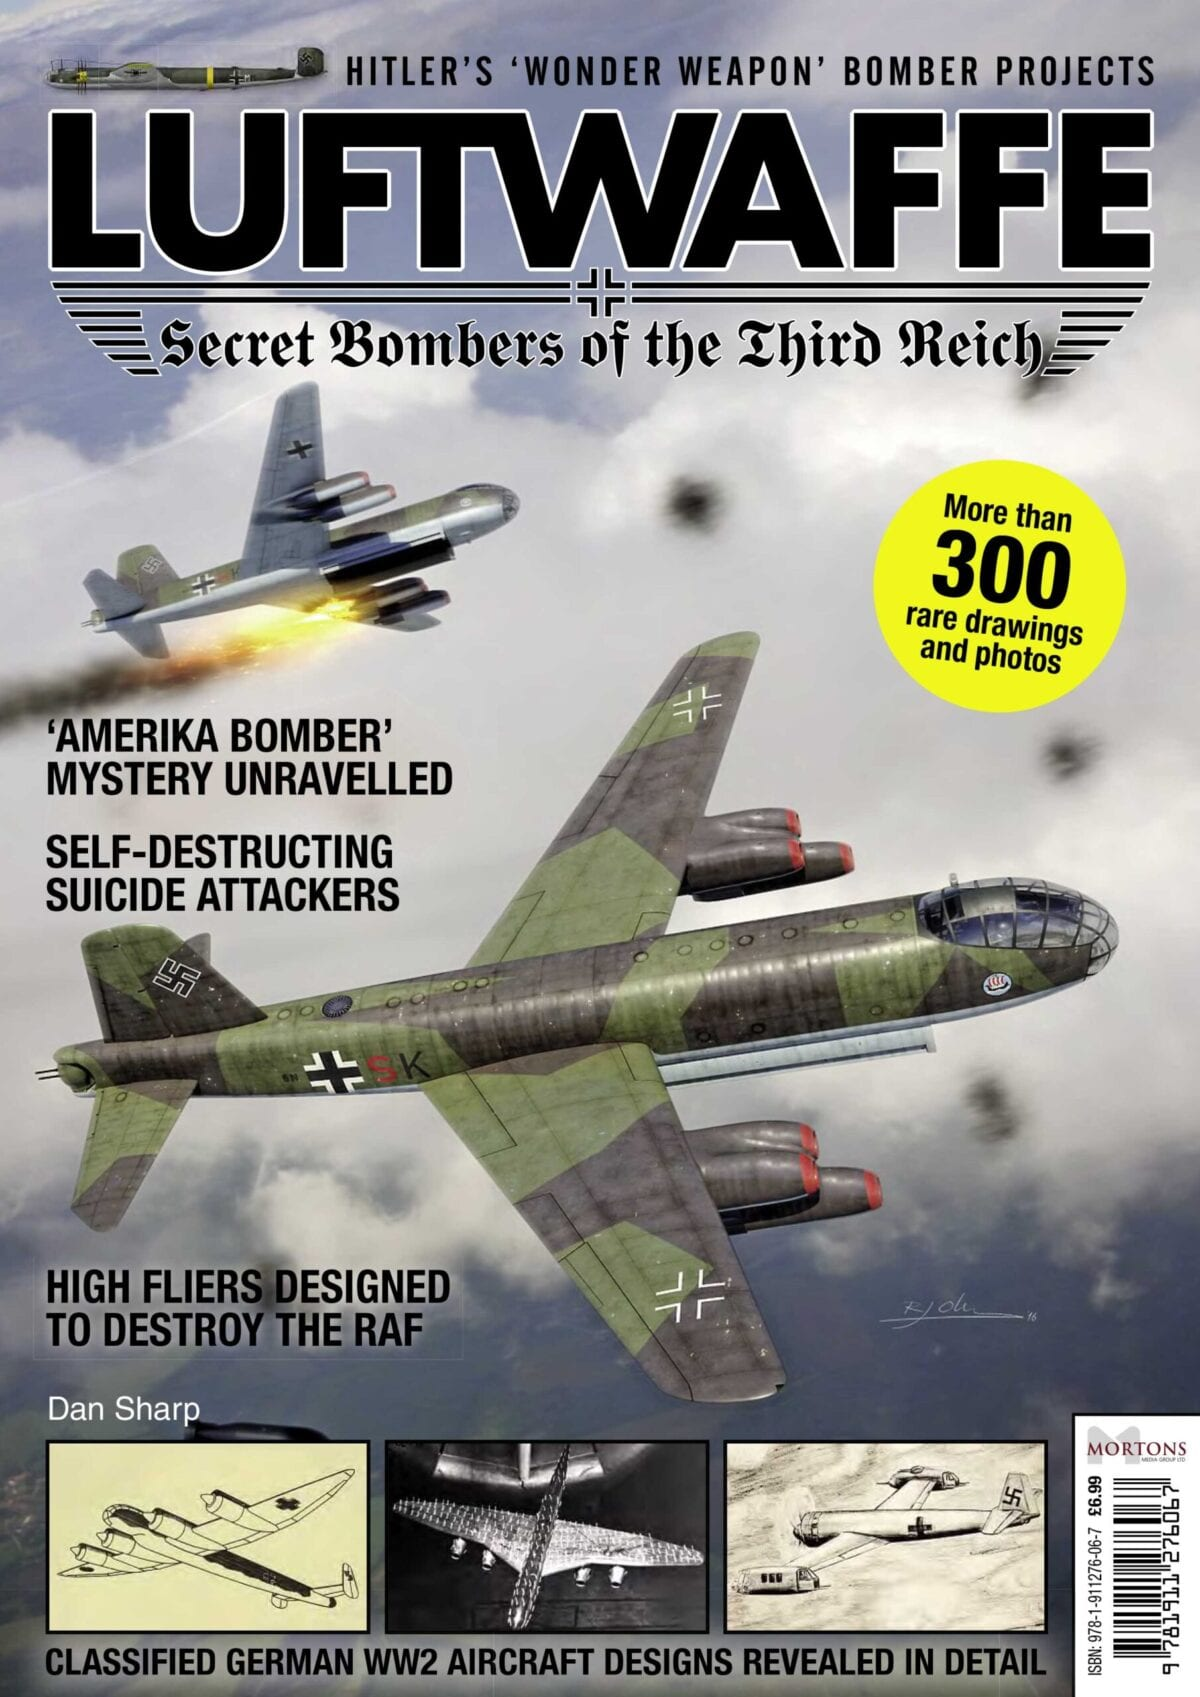 Luftwaffe Secret Bombers